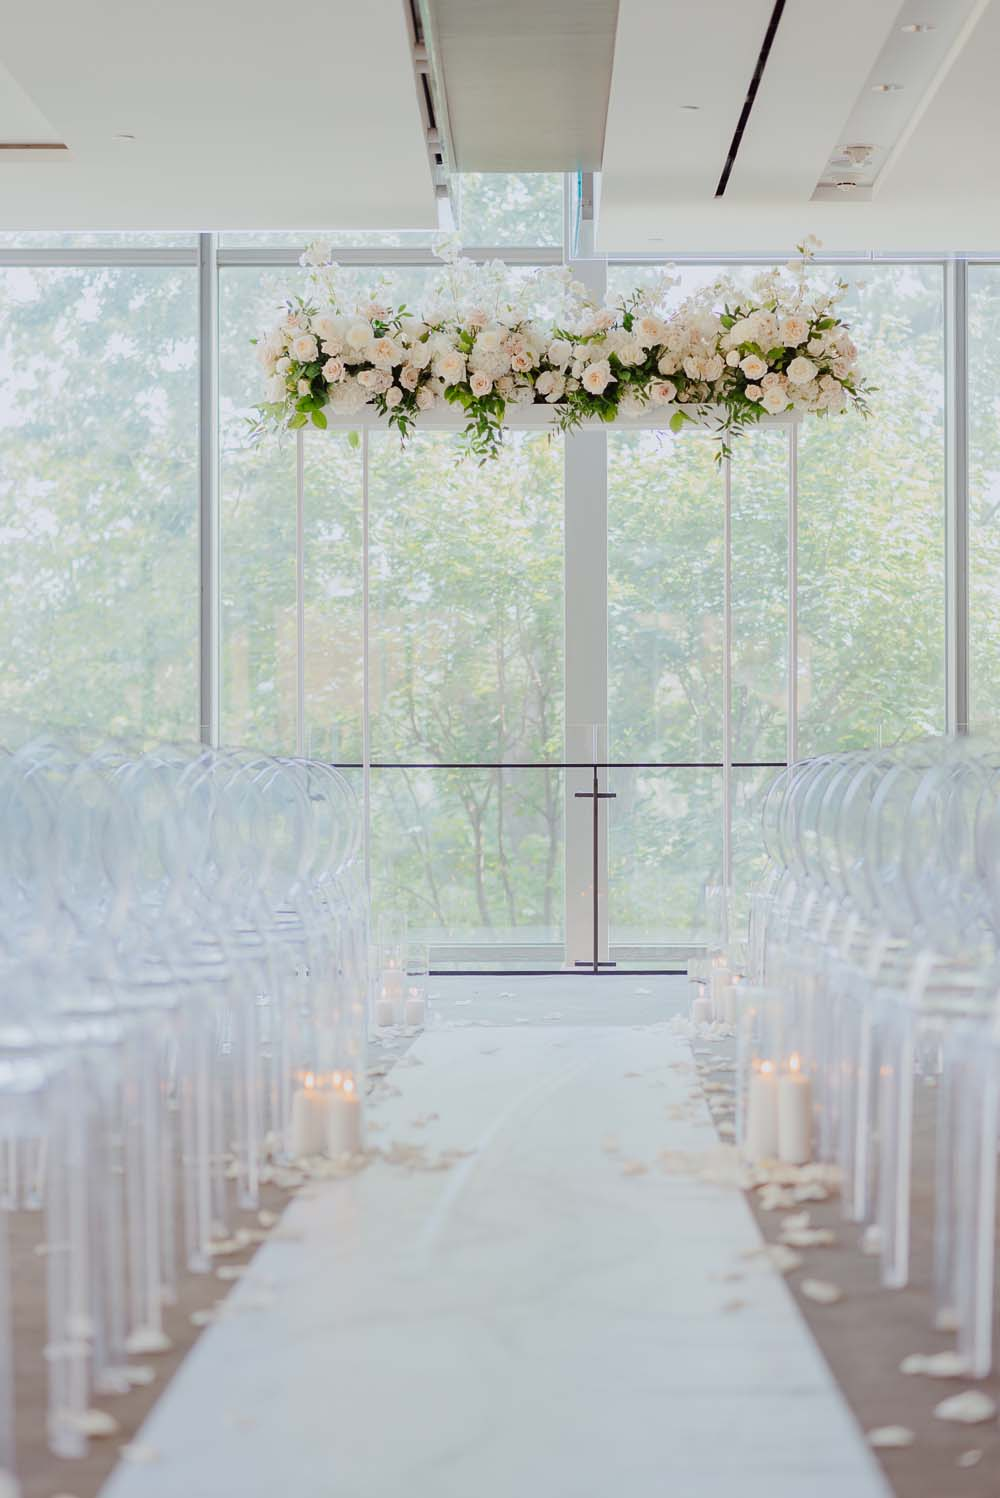 An Opulent Wedding At The Royal Conservatory Of Music - aisle